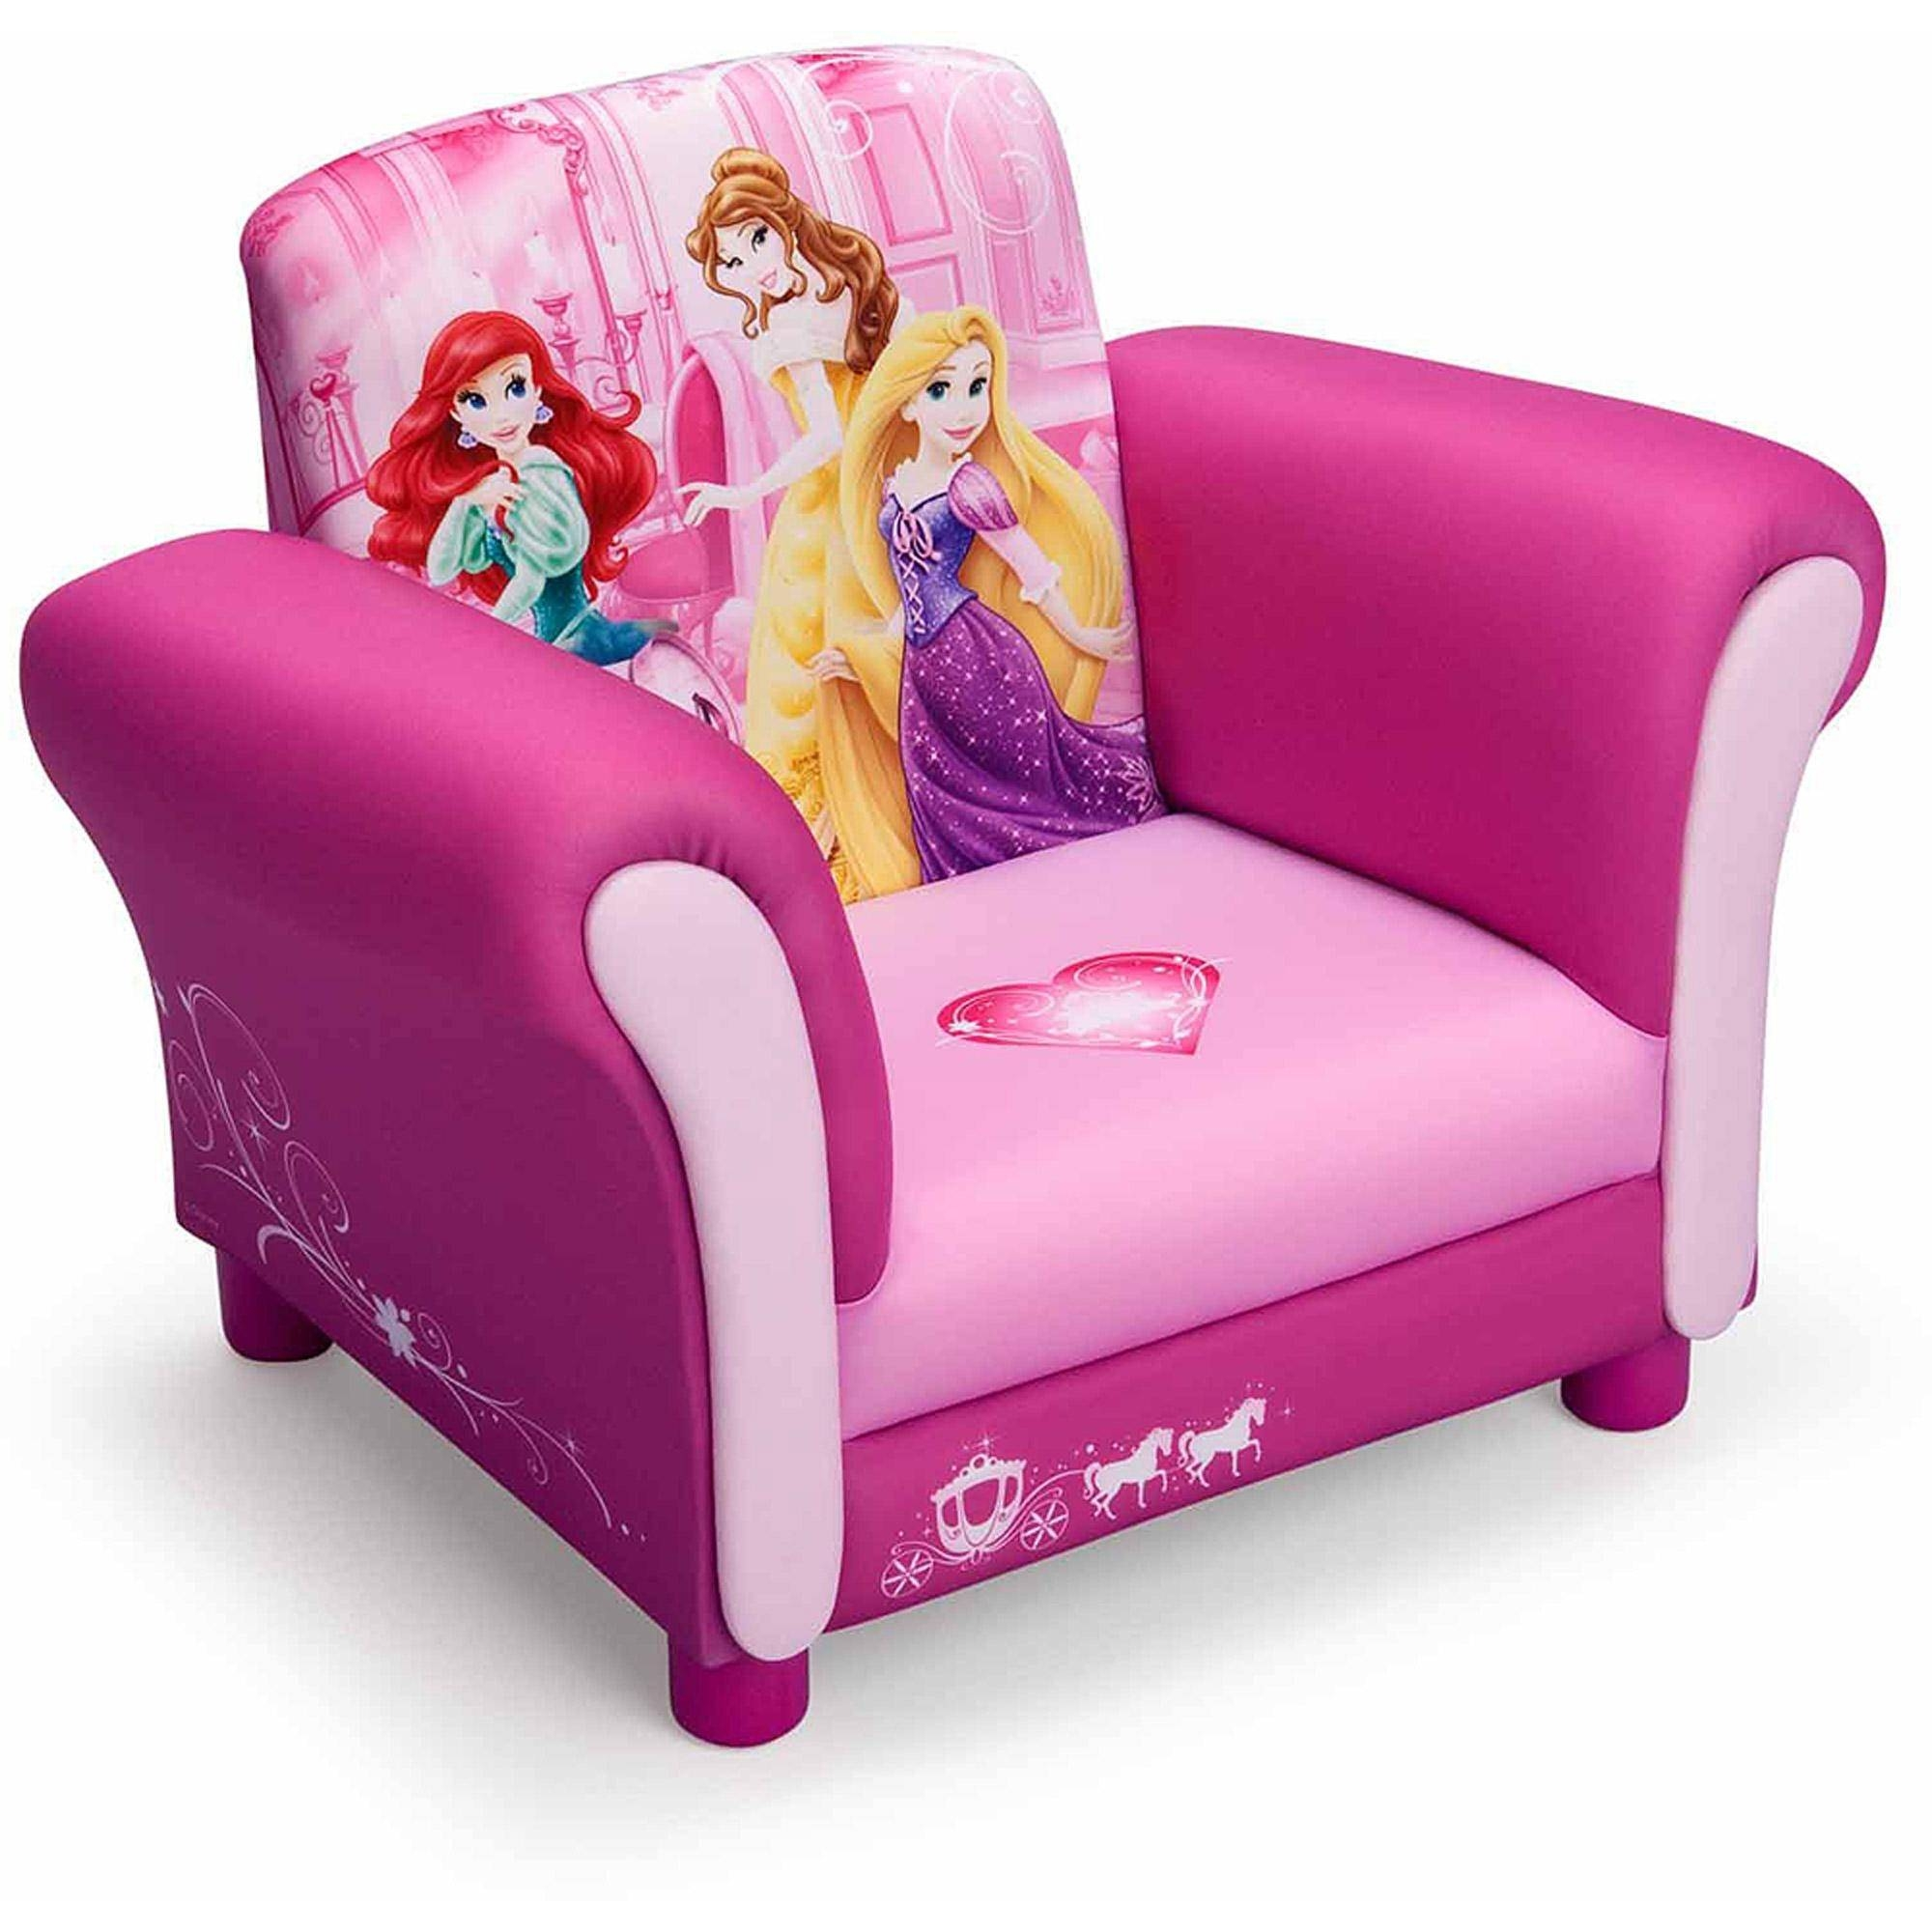 20 Best Collection Of Disney Princess Couches | Sofa Ideas for Disney Princess Couches (Image 1 of 15)